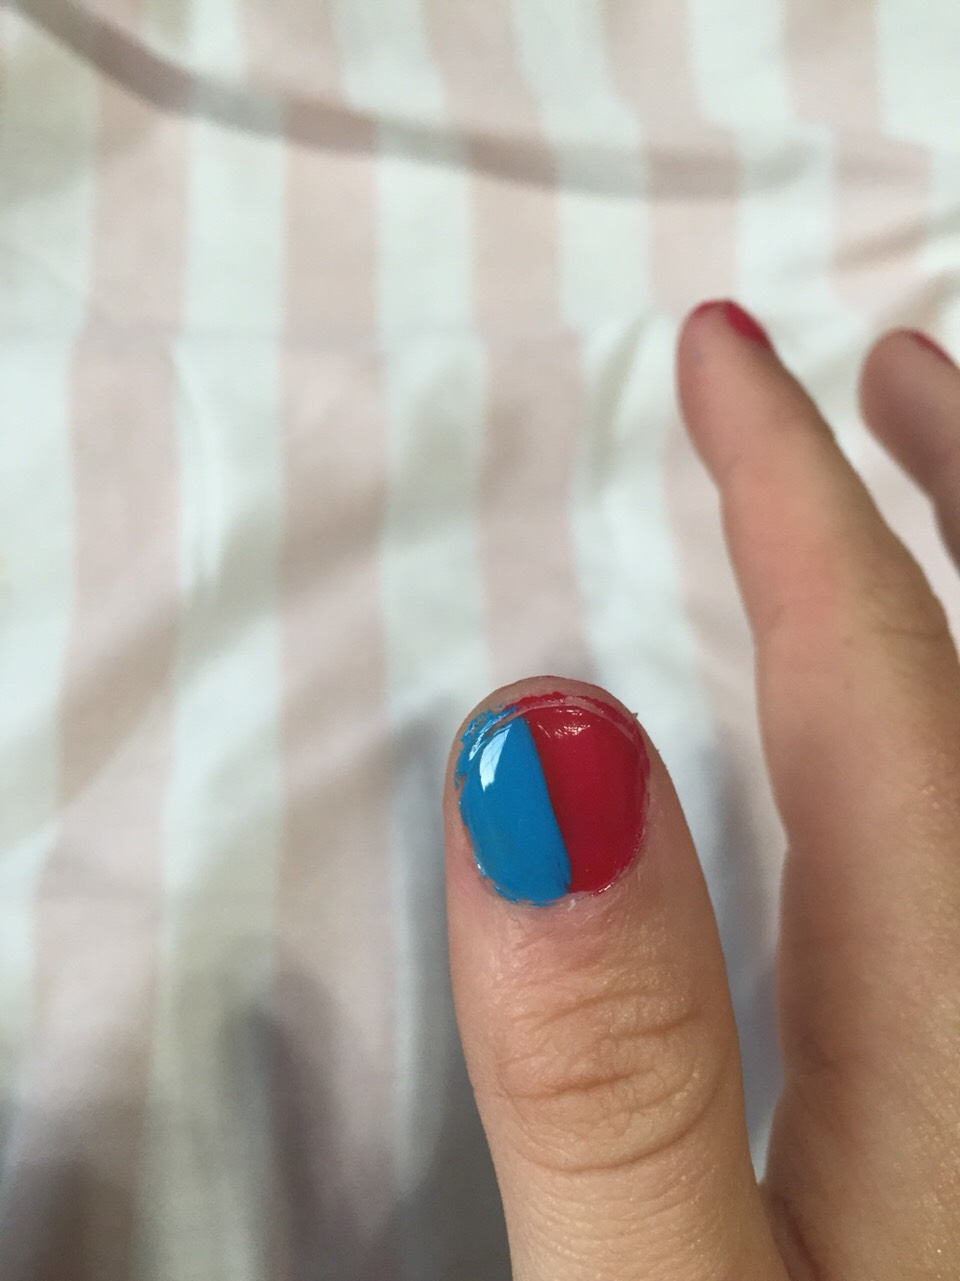 Paint the other 1/2 of your thumb blue